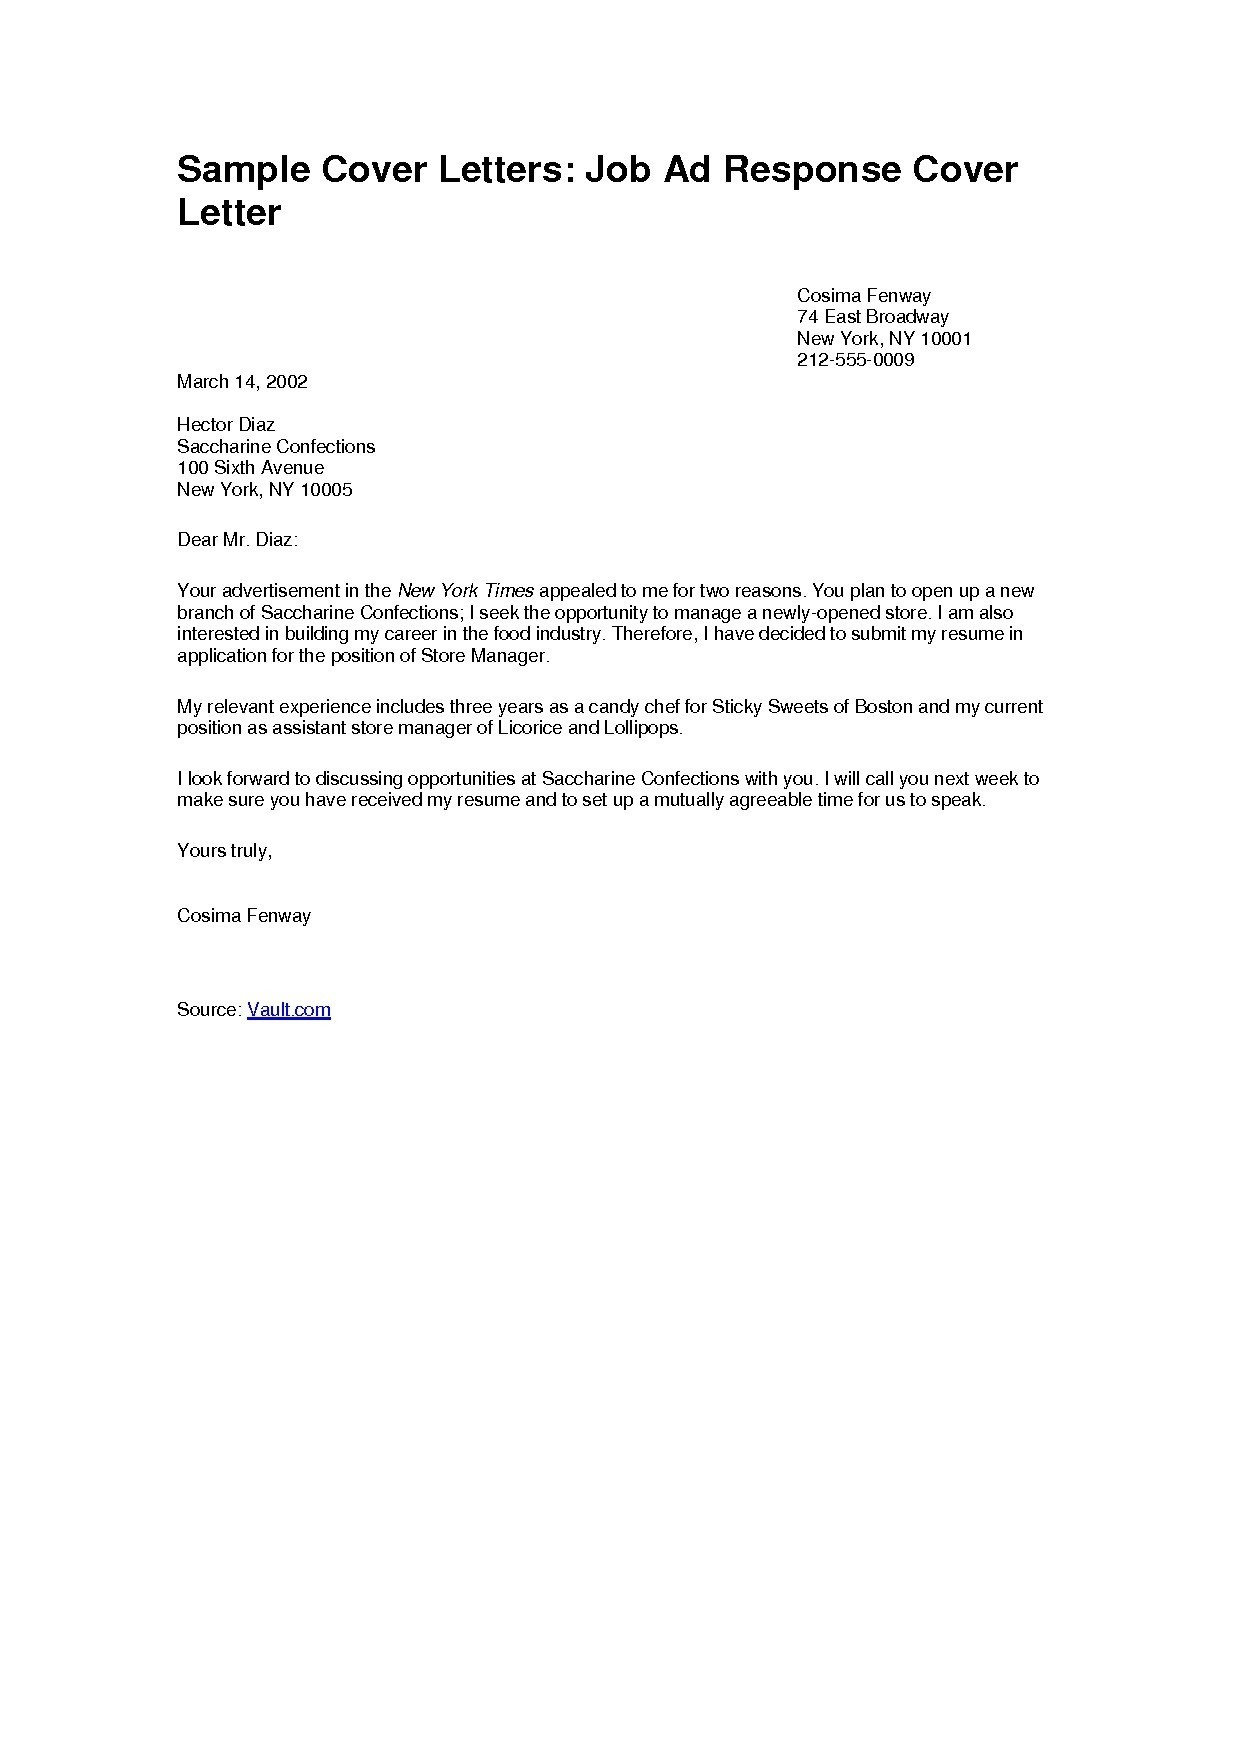 Cover letter sample for job application template samples for Copy of a good cover letter